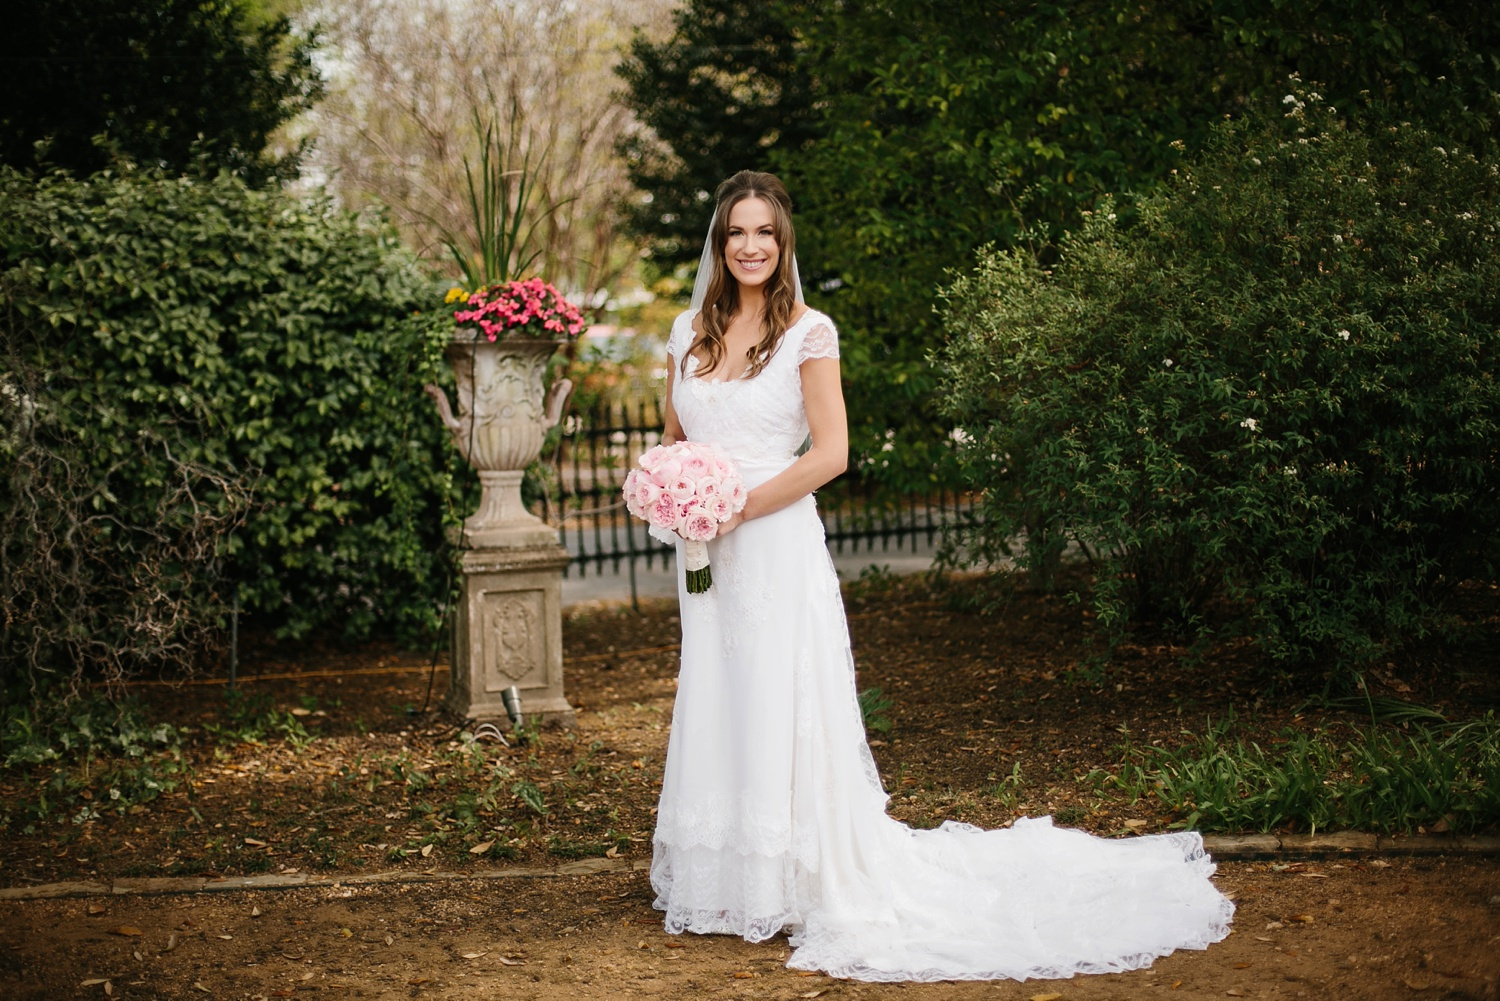 Amber + Daniel an intimate, simple, spring ceremony at Heard Craig Center and reception at Gather in McKinney, Texas by North Texas Wedding Photographer Rachel Meagan Photography 031